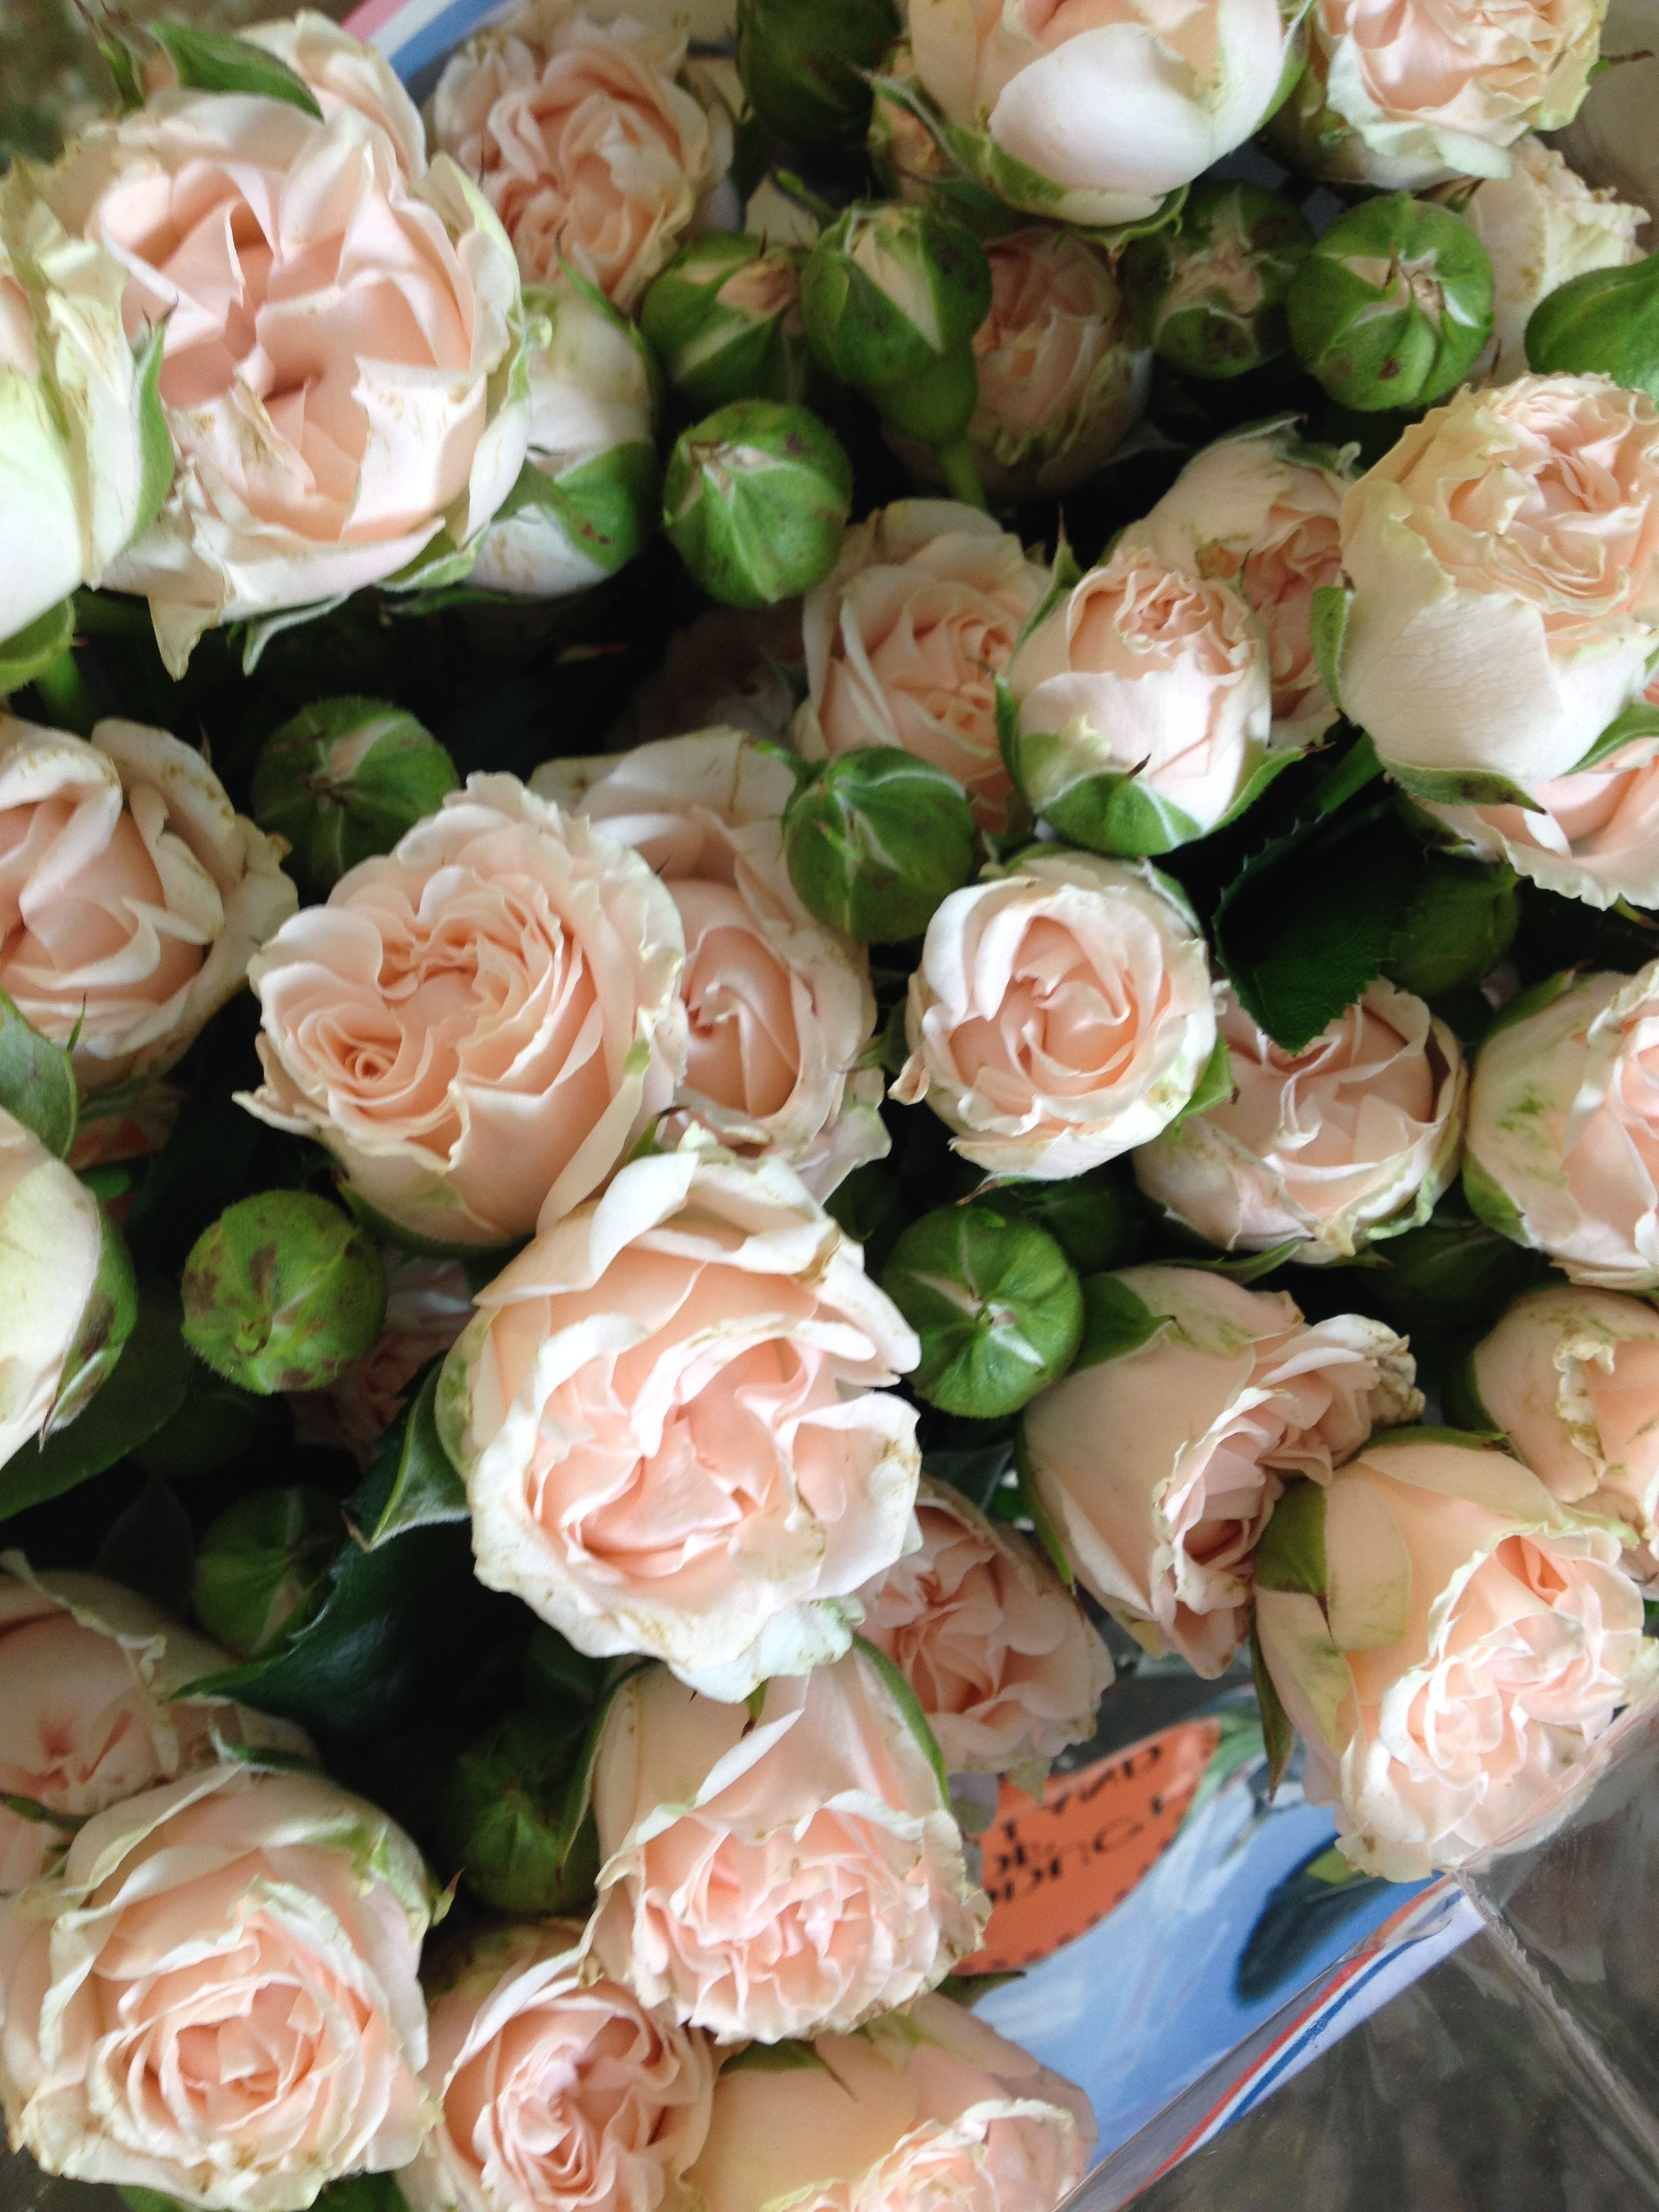 Home bulk roses peach roses - Very Soft Pink Sold In Bunches Of 10 Stems From The Flowermonger The Wholesale Floral Home Delivery Service